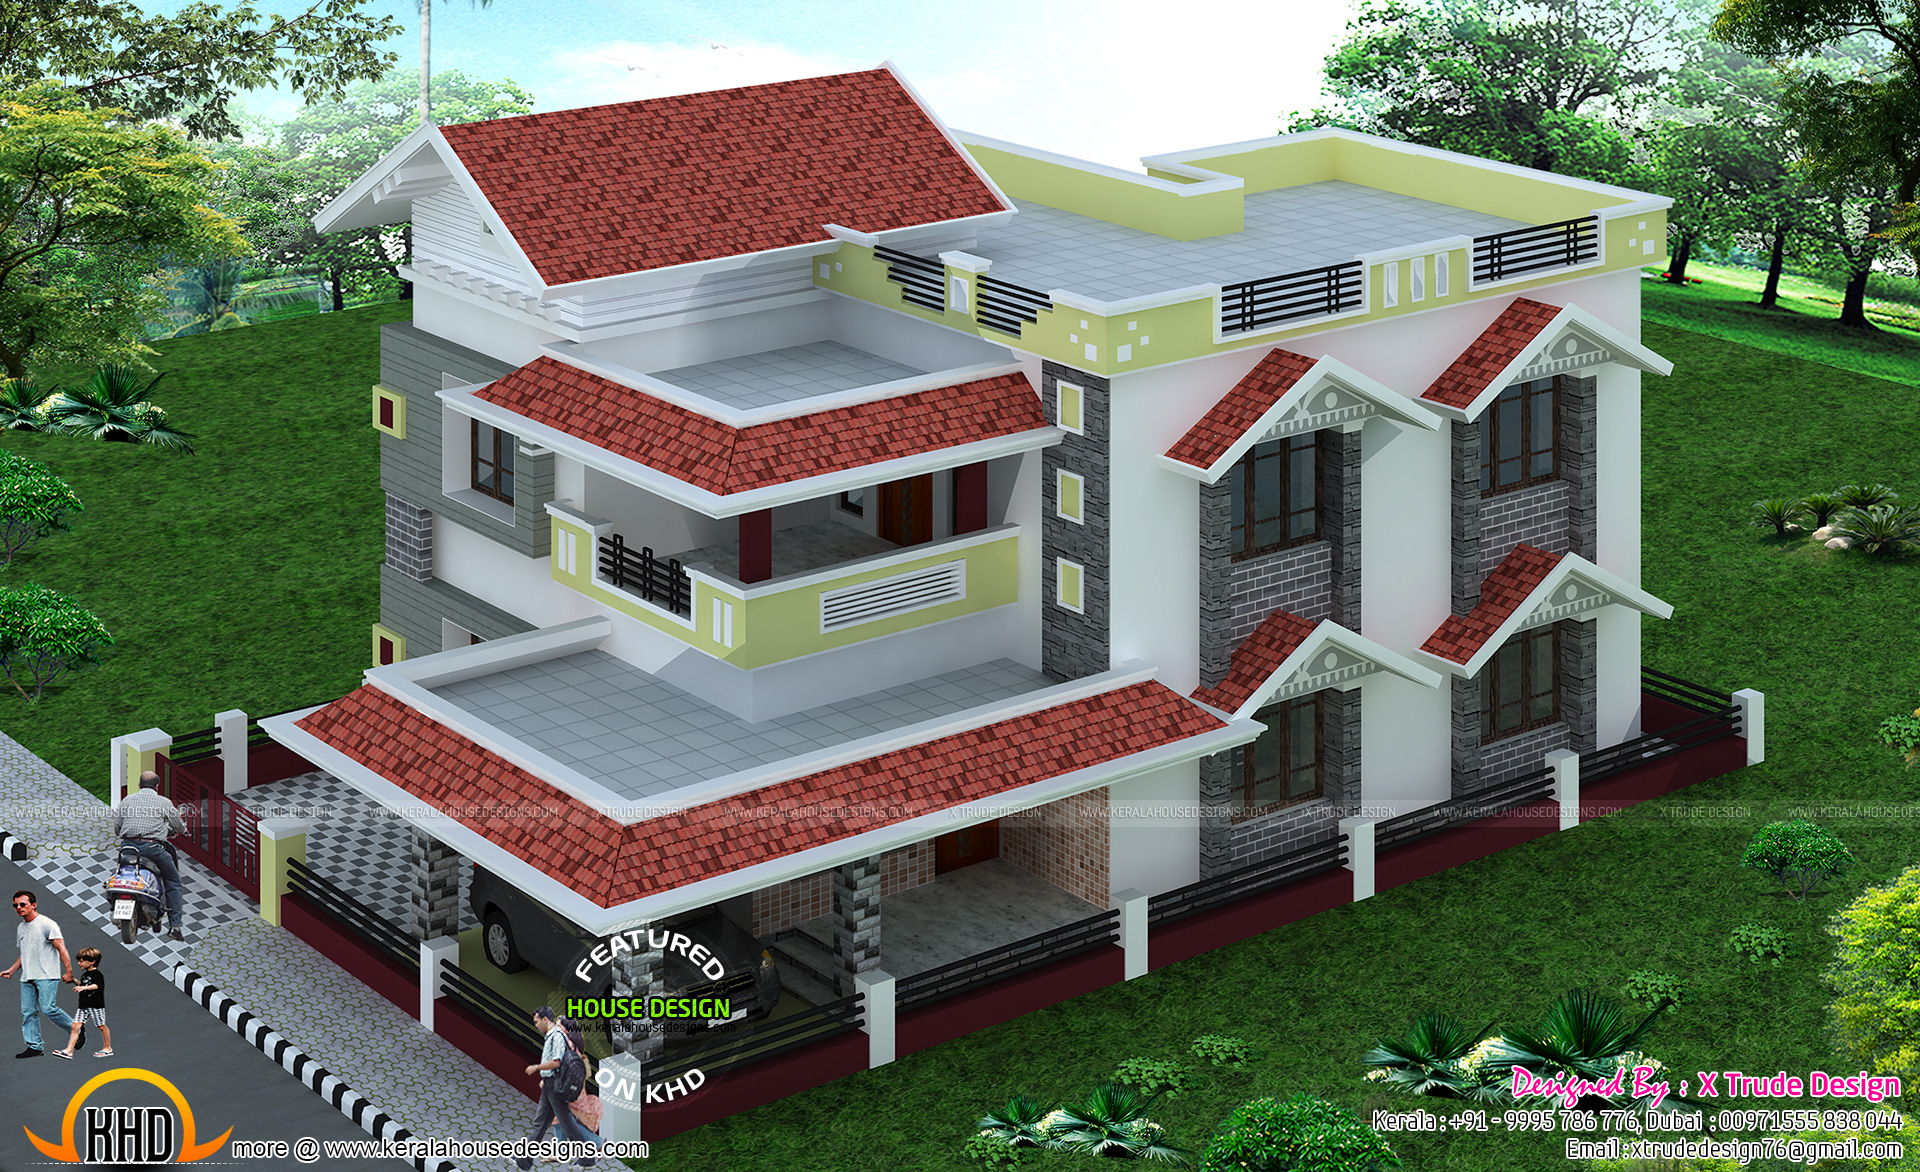 2581 sq ft house by x trude design kerala home design for India best house design